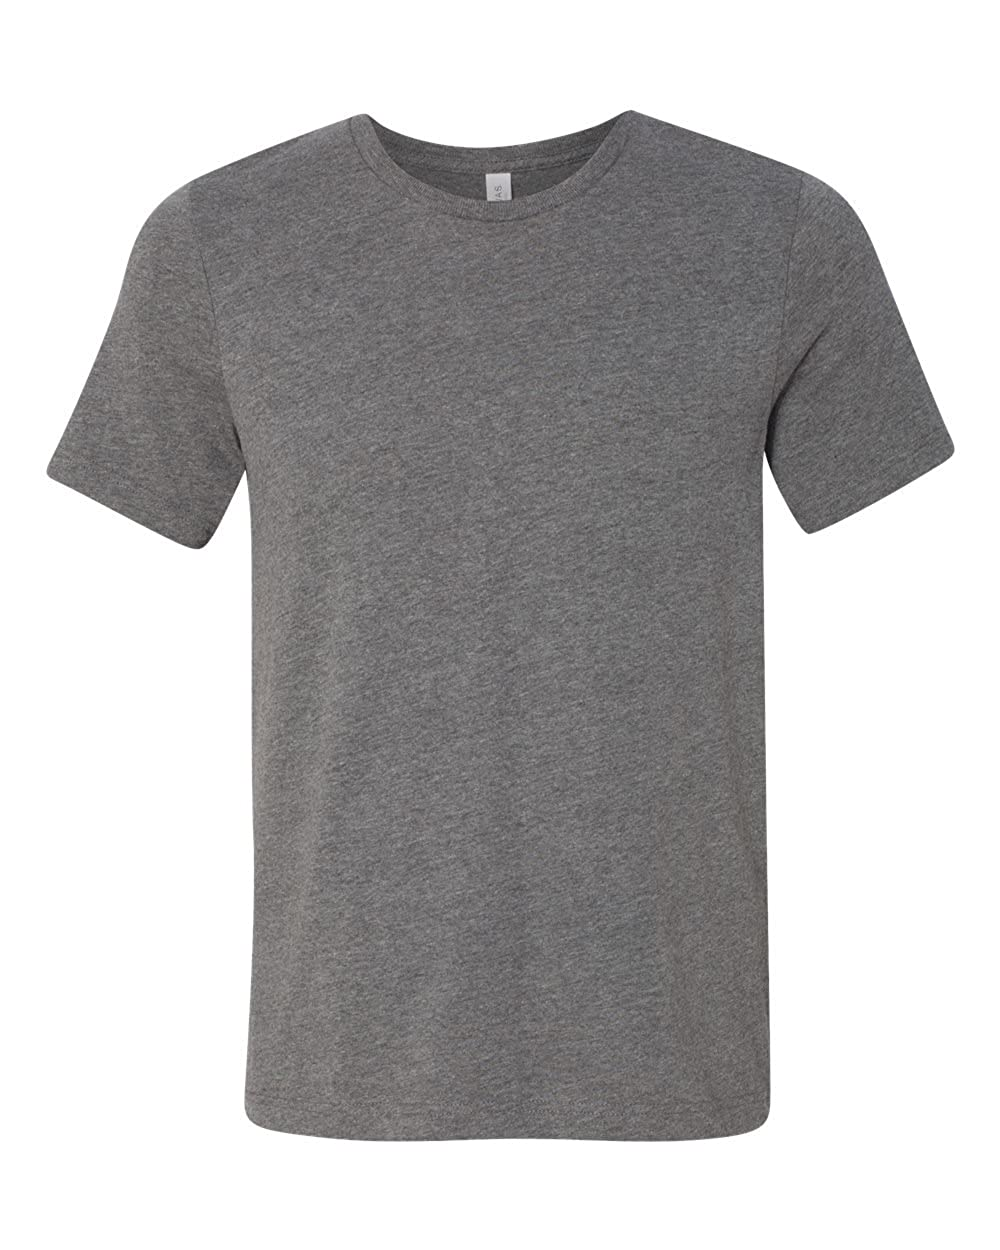 Canvas Unisex Jersey Heavyweight 55 oz Crew T-Shirt Bella Style # 3091 - Original Label S - DEEP HEATHER